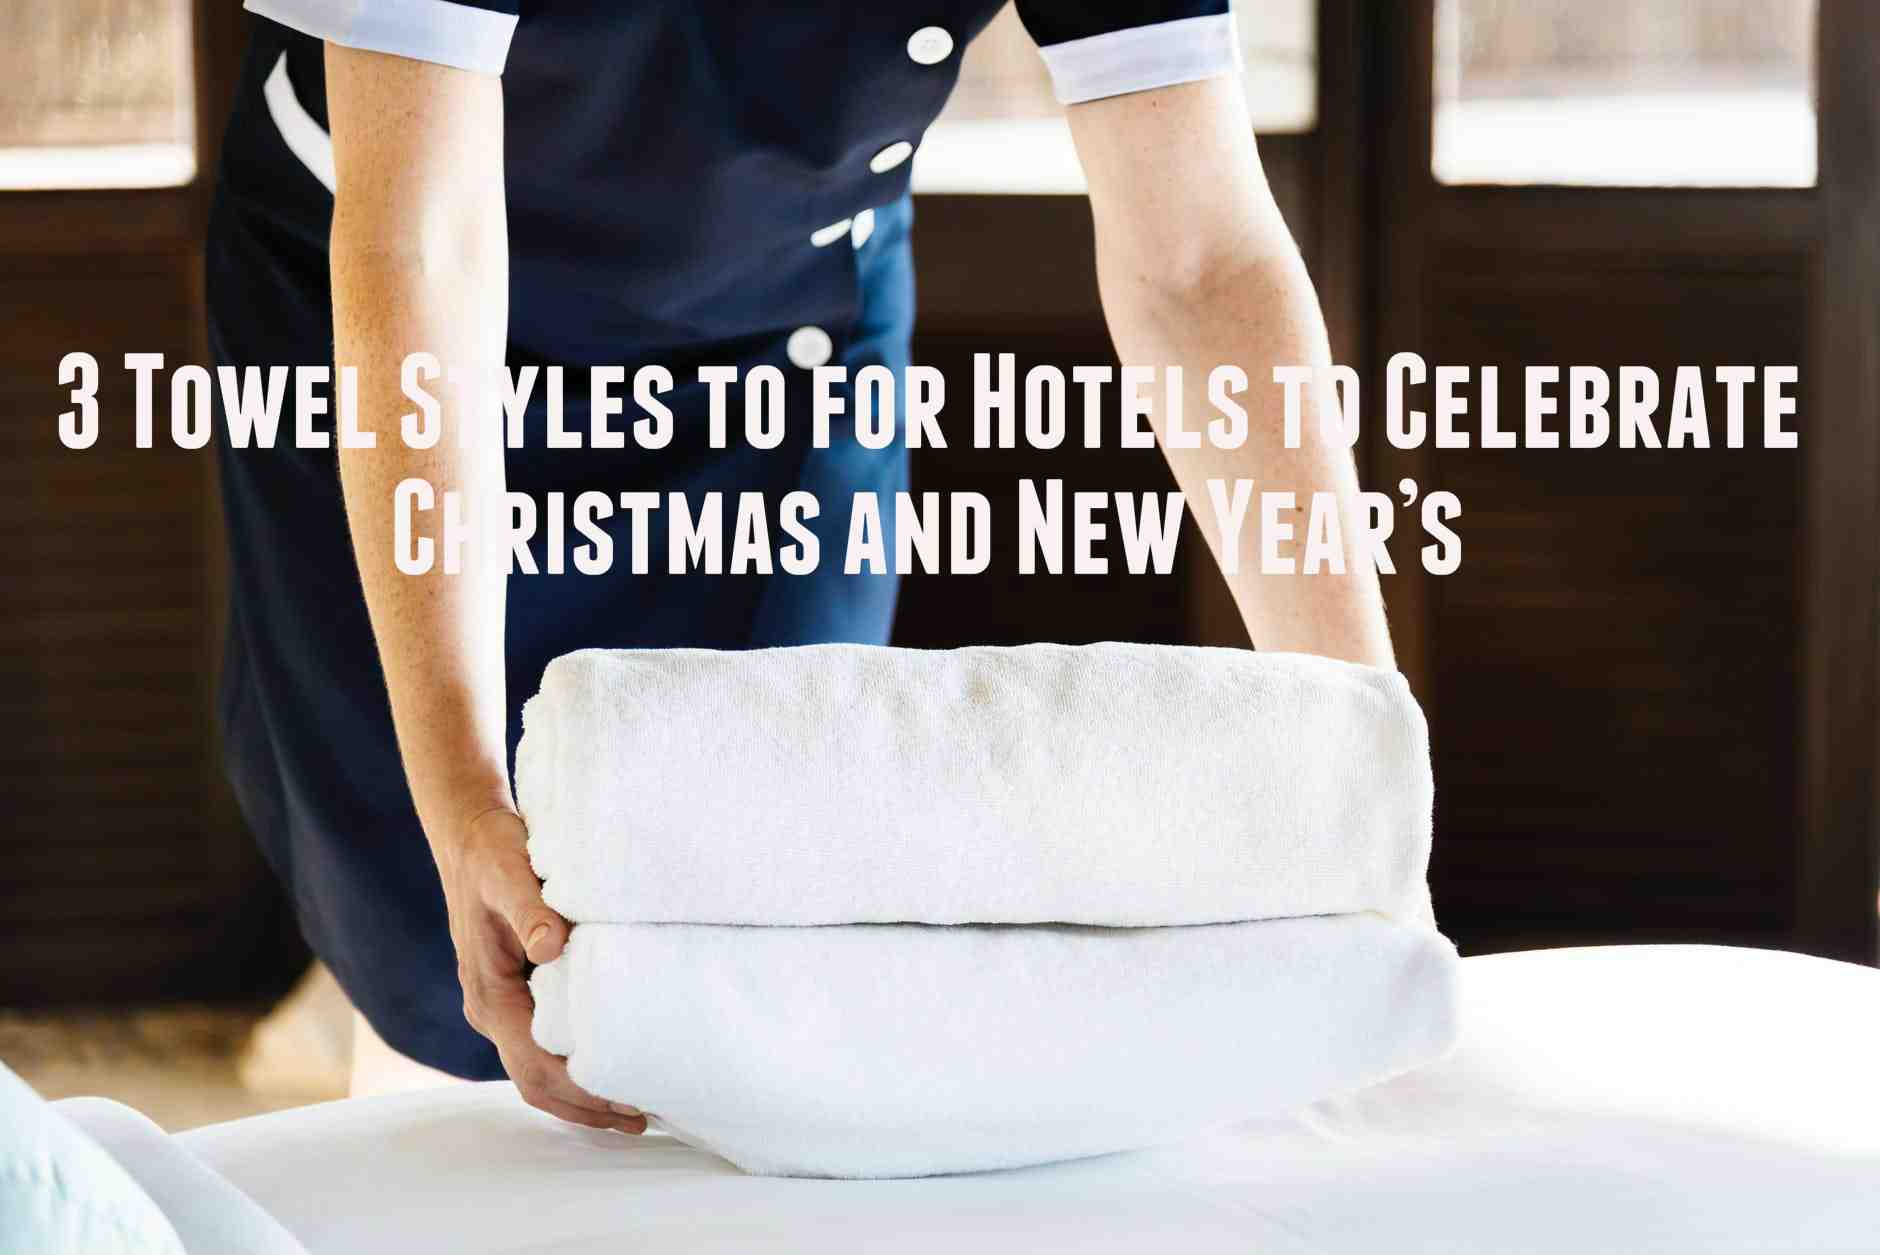 3 Towel Styles to for Hotels to Celebrate Christmas and New Year's